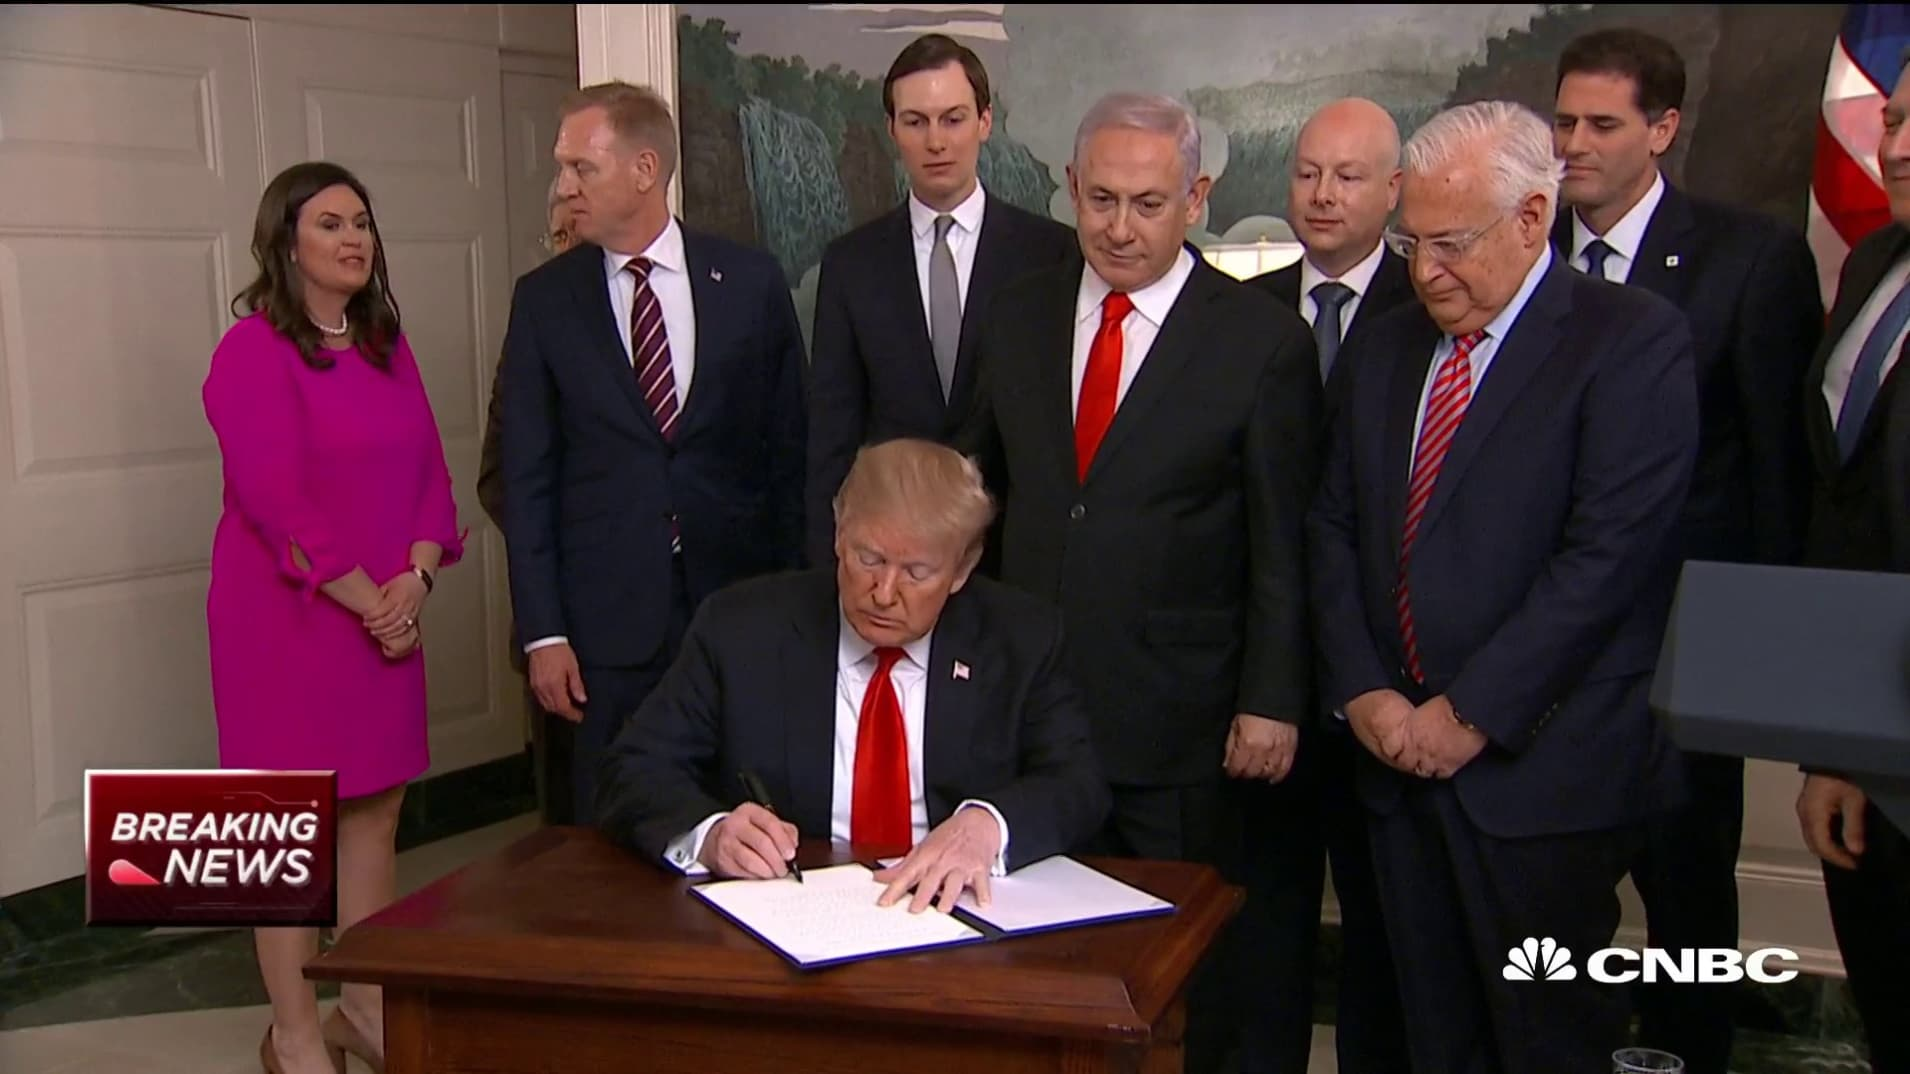 Trump signs an official proclamation recognizing Israel's sovereignty over the Golan Heights